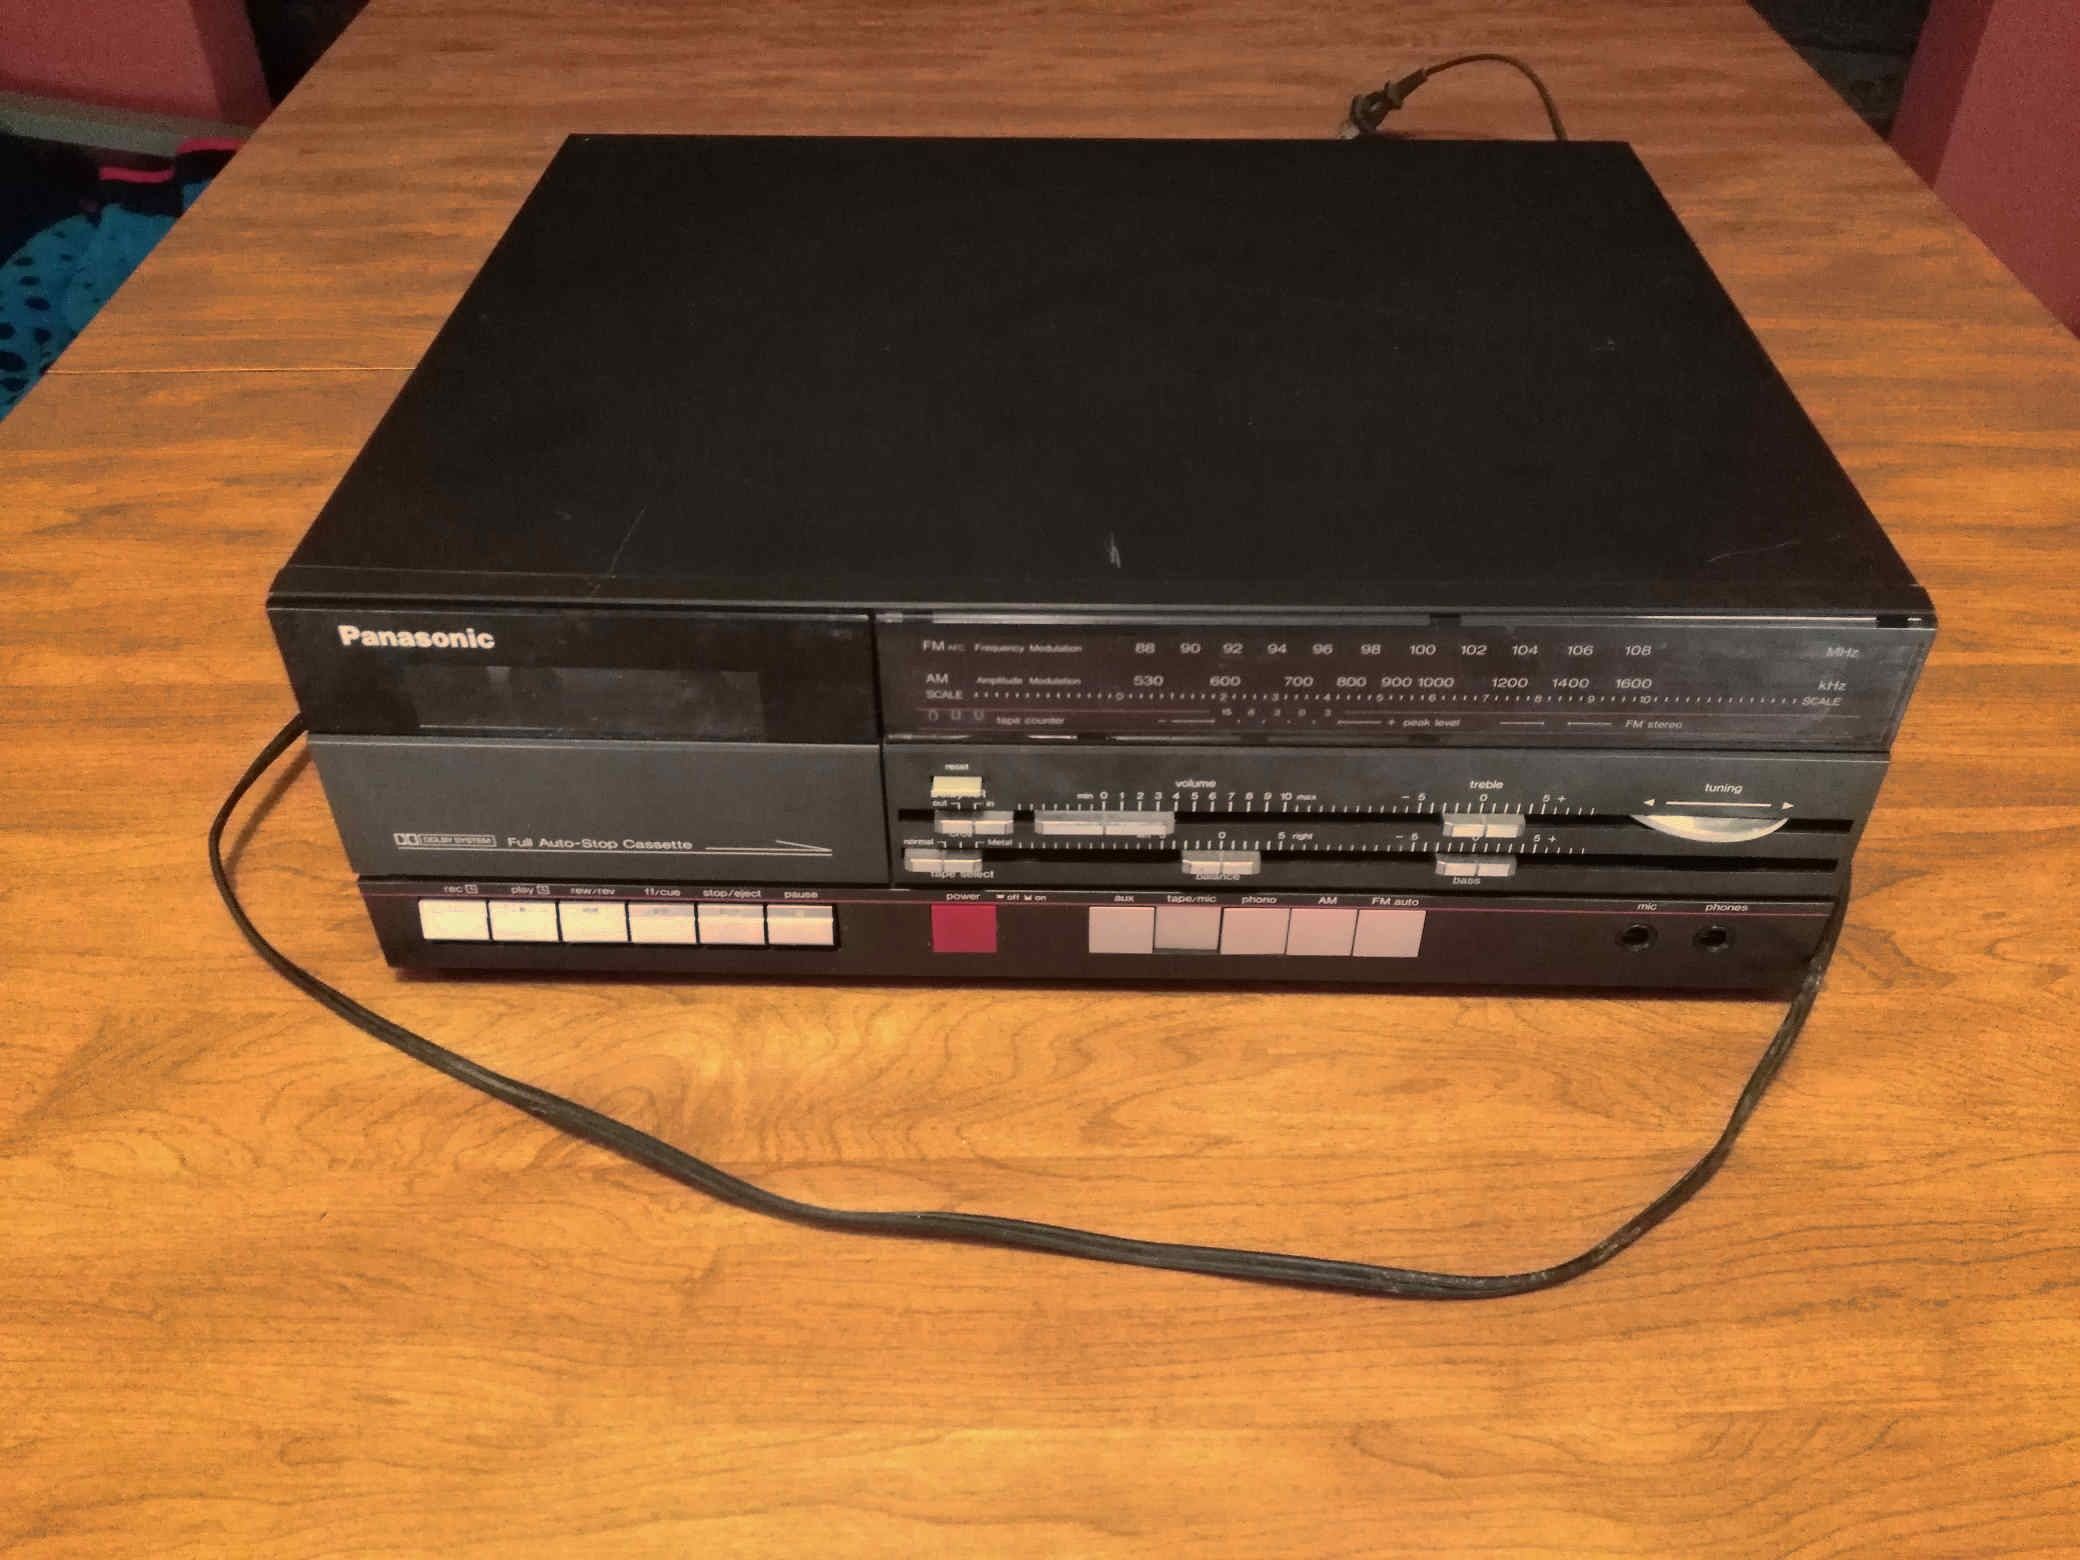 Panasonic tape deck front view